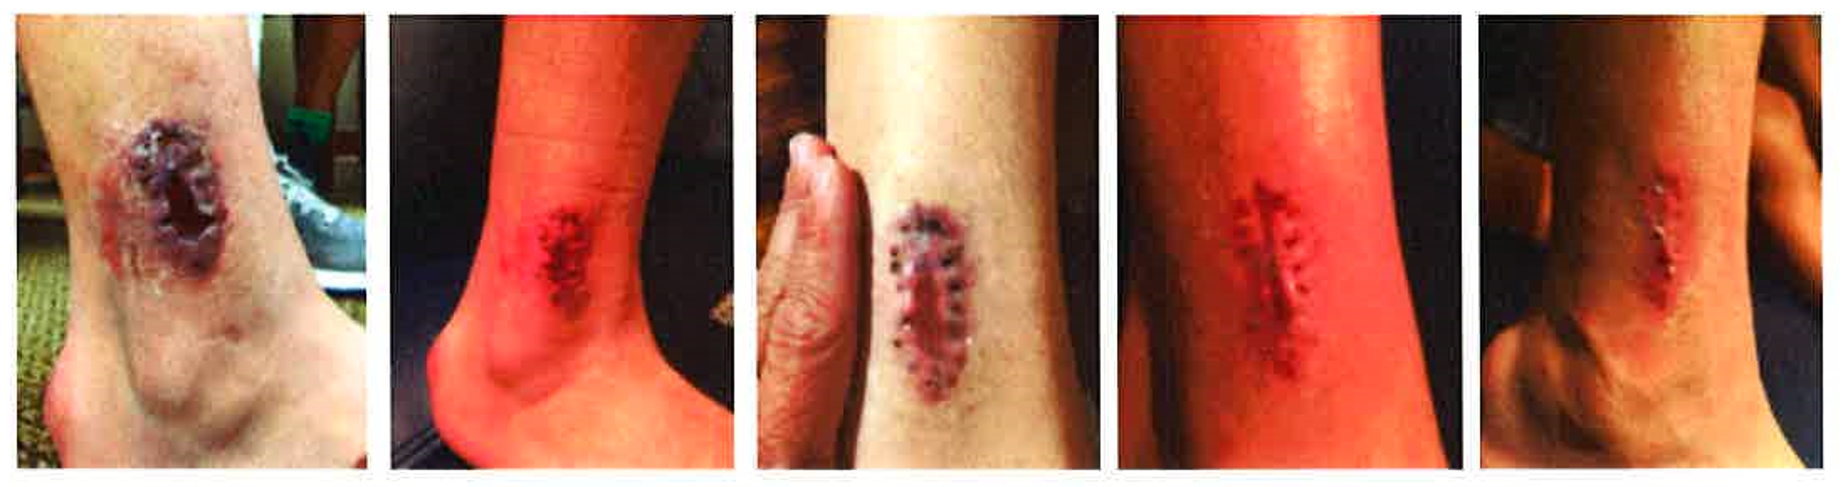 healing progress of surgical wound with Class IV laser therapy treatments